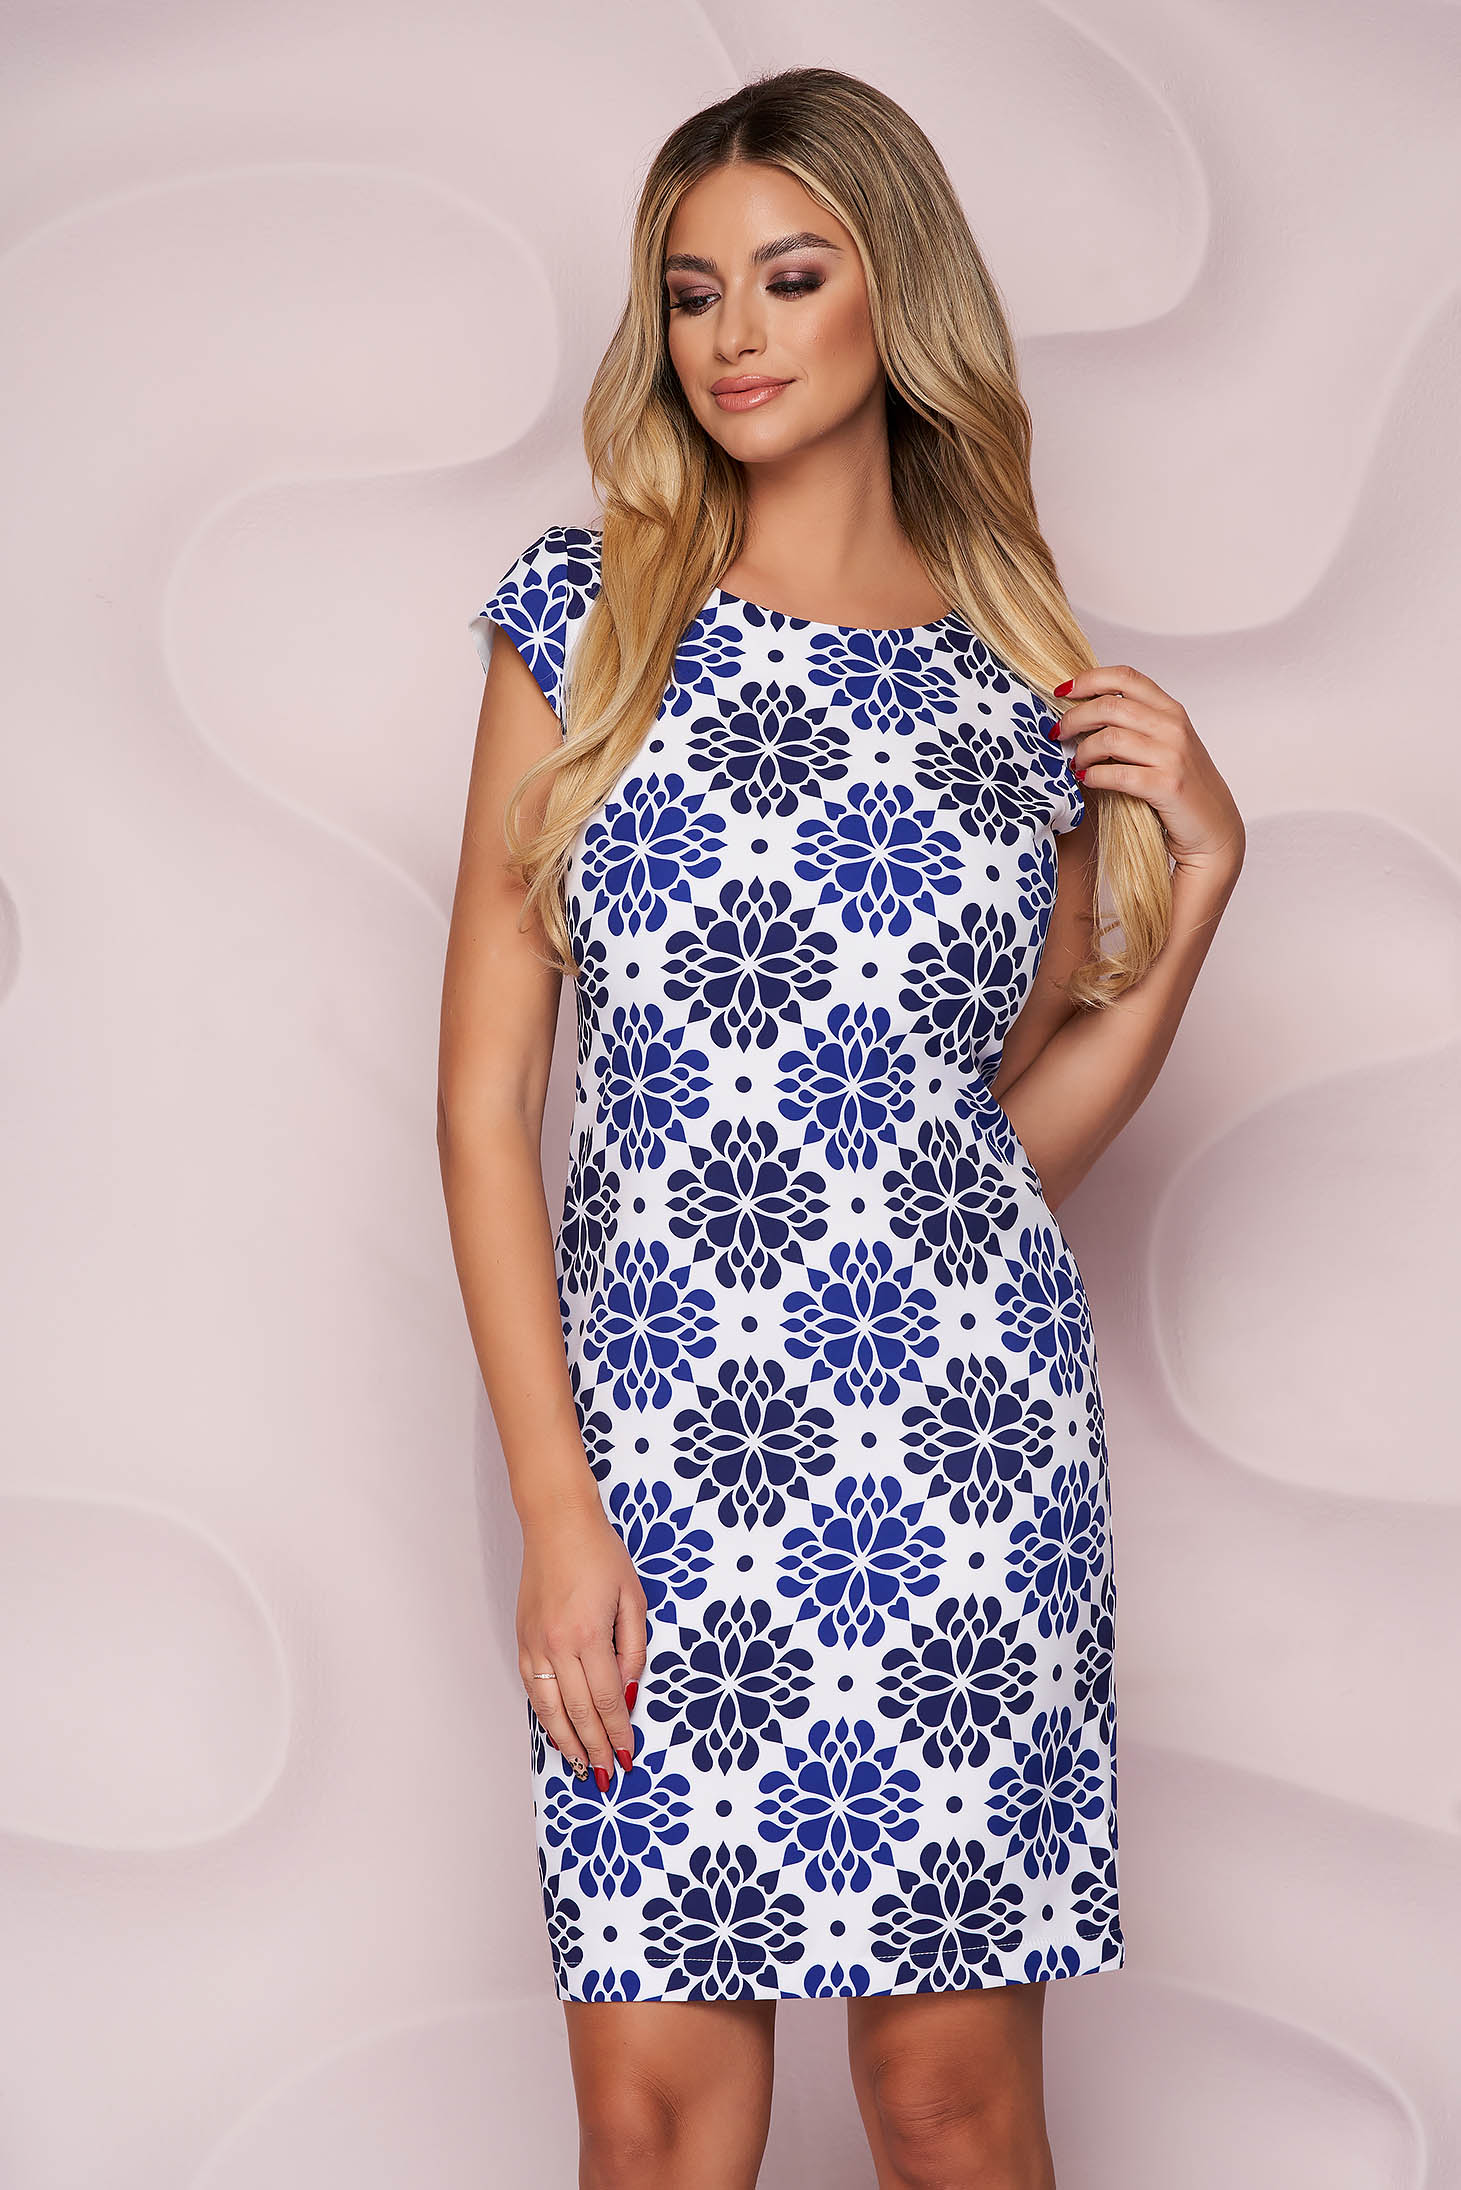 StarShinerS dress office straight thin fabric nonelastic fabric with floral print